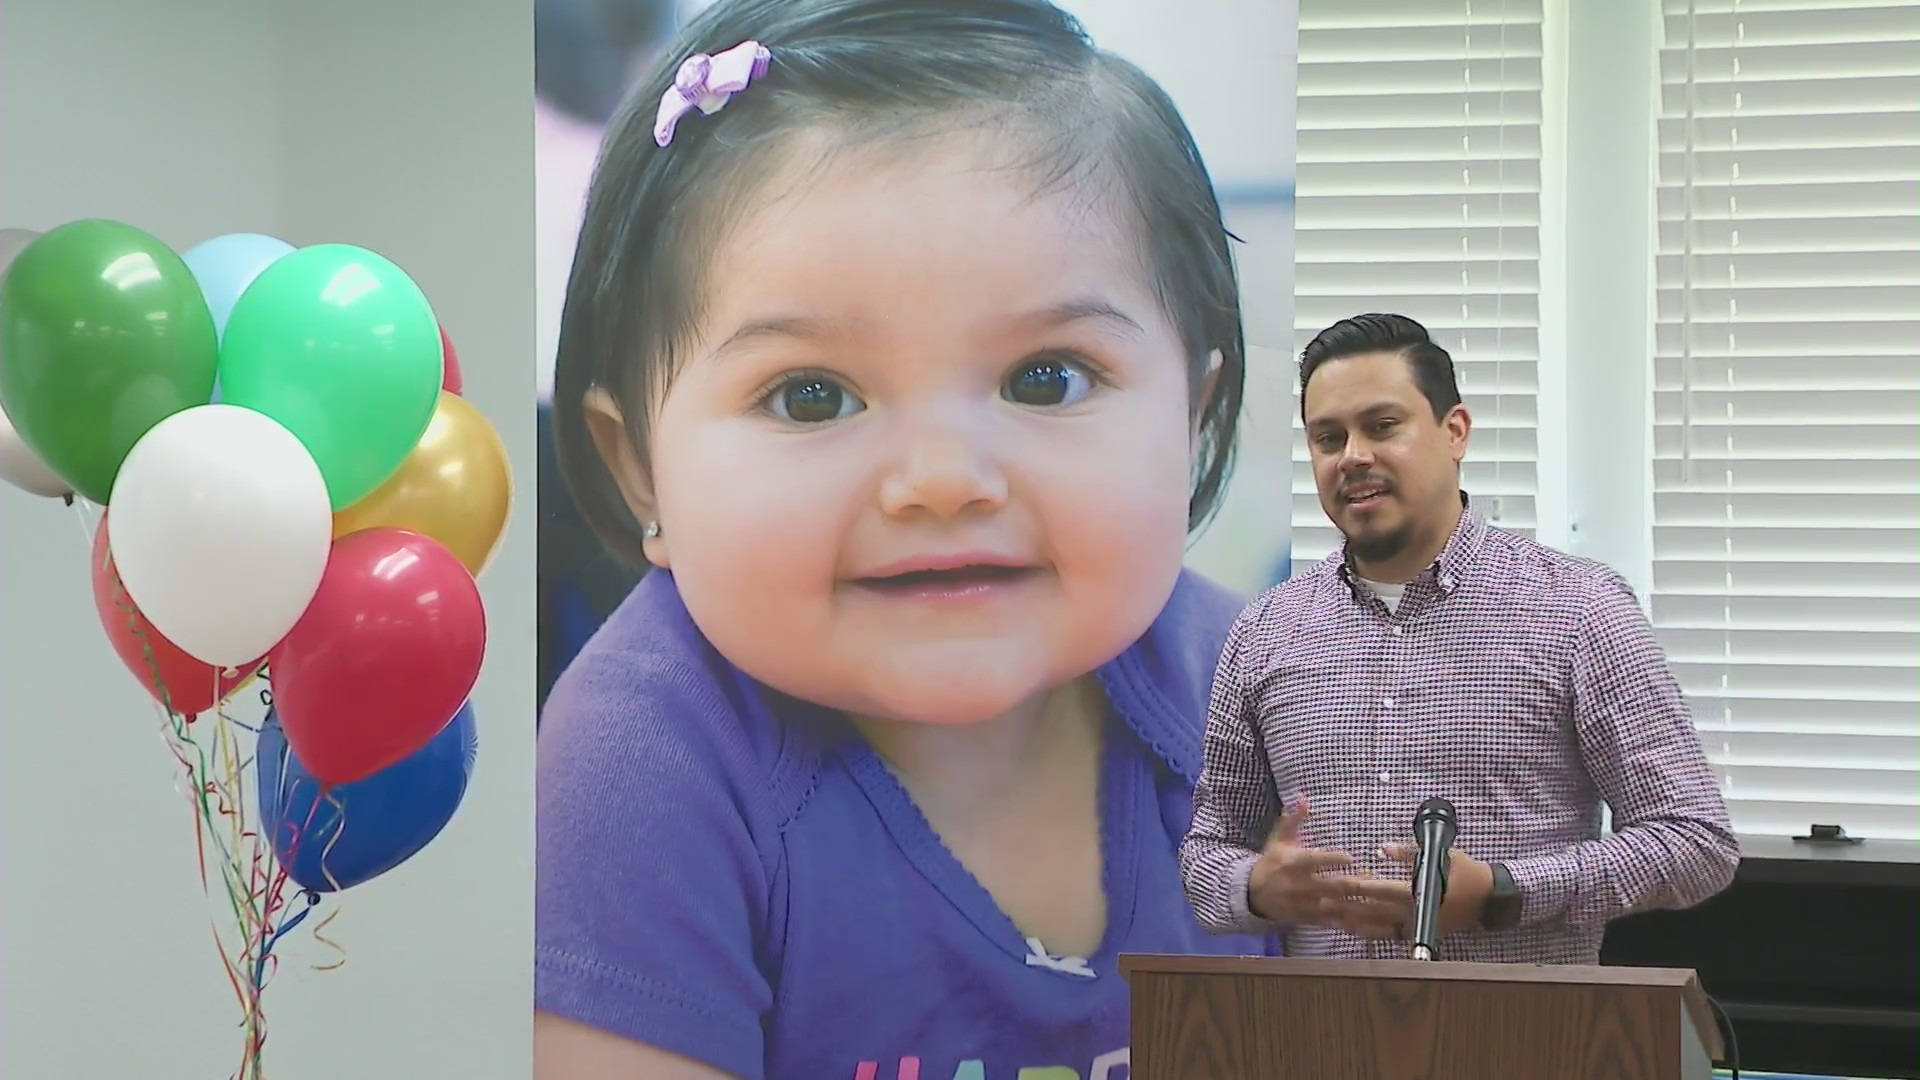 Nearly a year after his wife was struck and killed by a drunk driver, Alvarez is keeping his spirits high as he celebrates his first Father's Day on June 20, 2021 with his baby girl.